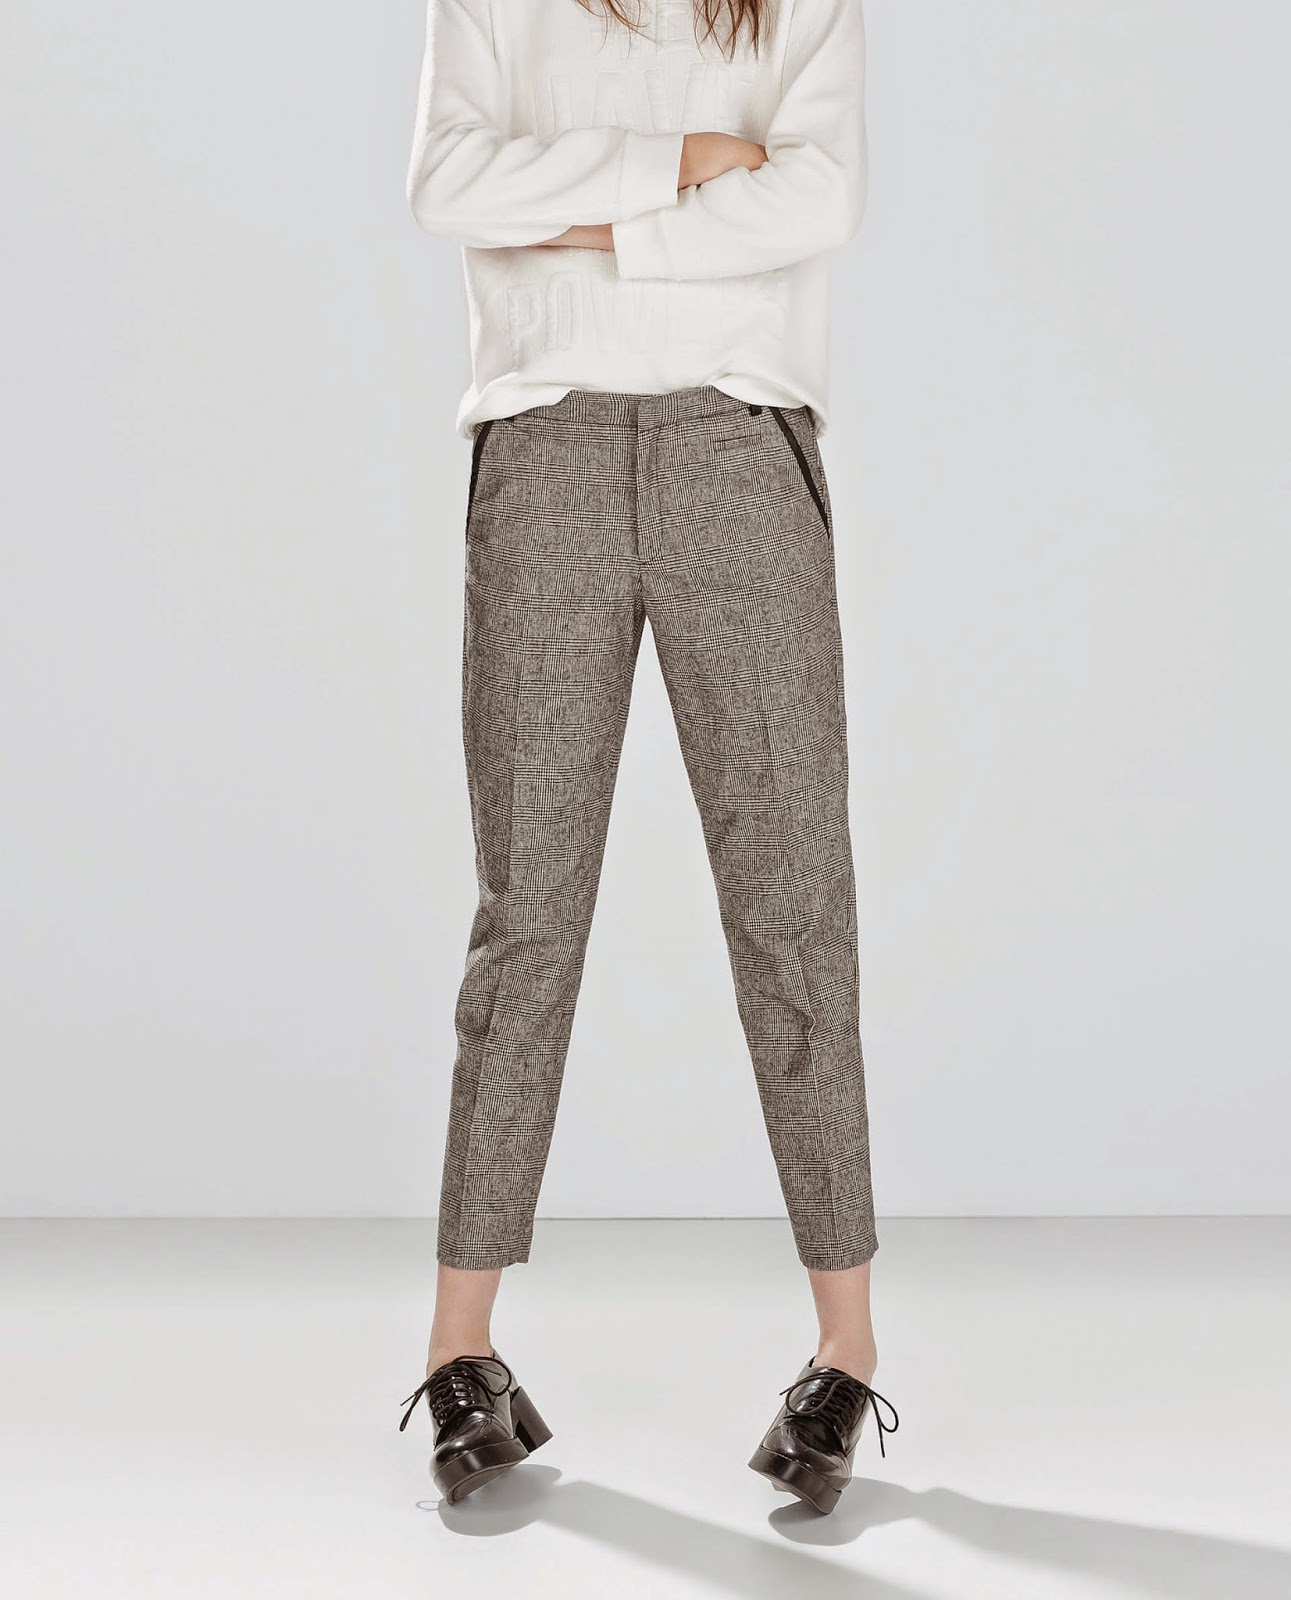 zara dogtooth trousers, trousers with leather piping,